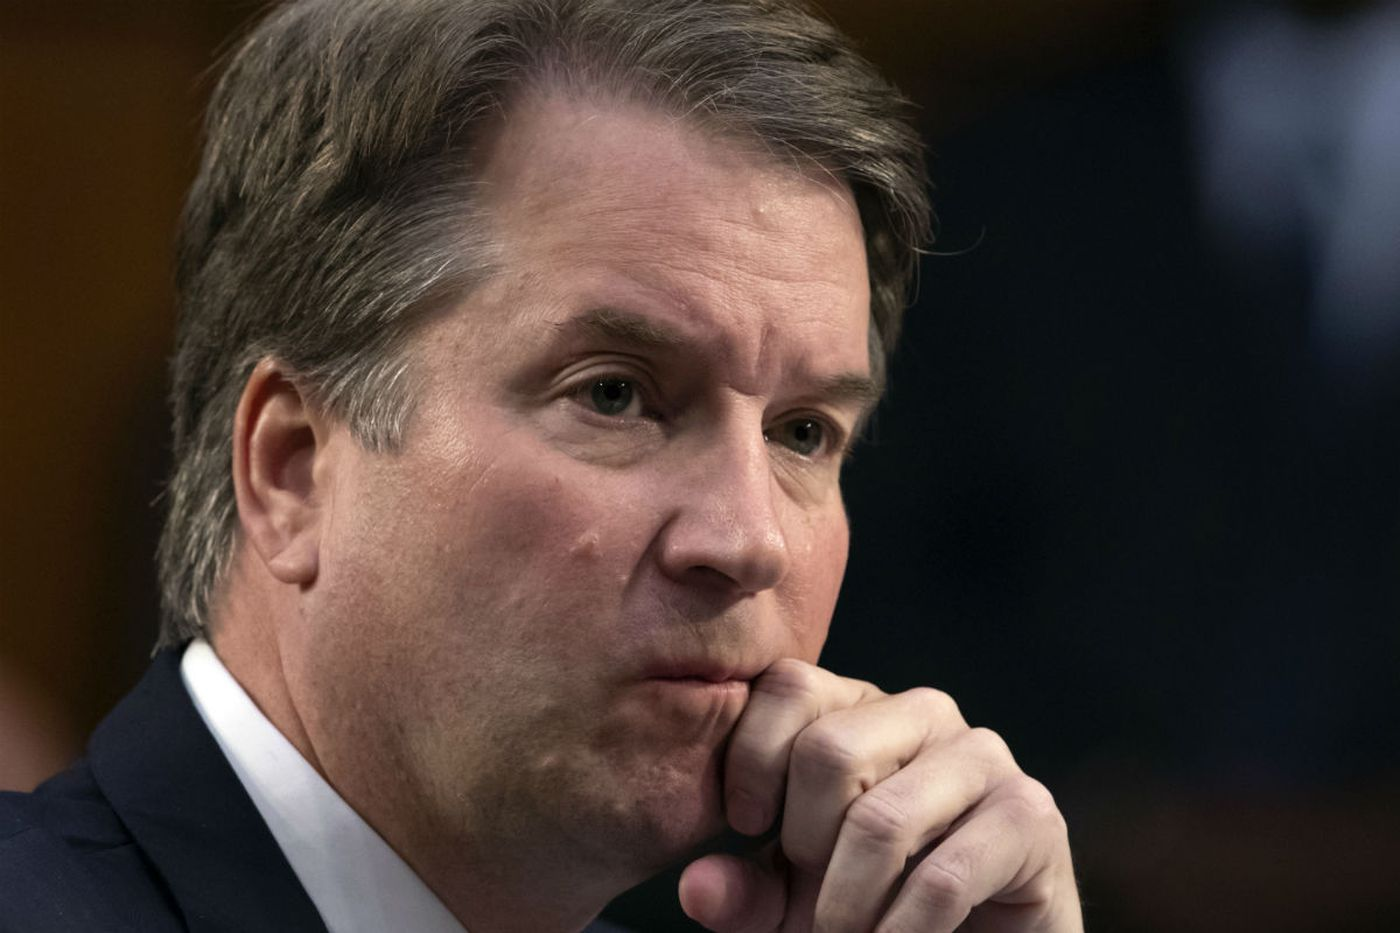 Brett Kavanaugh, facing more sexual misconduct allegations, vows: 'I'm not going anywhere'